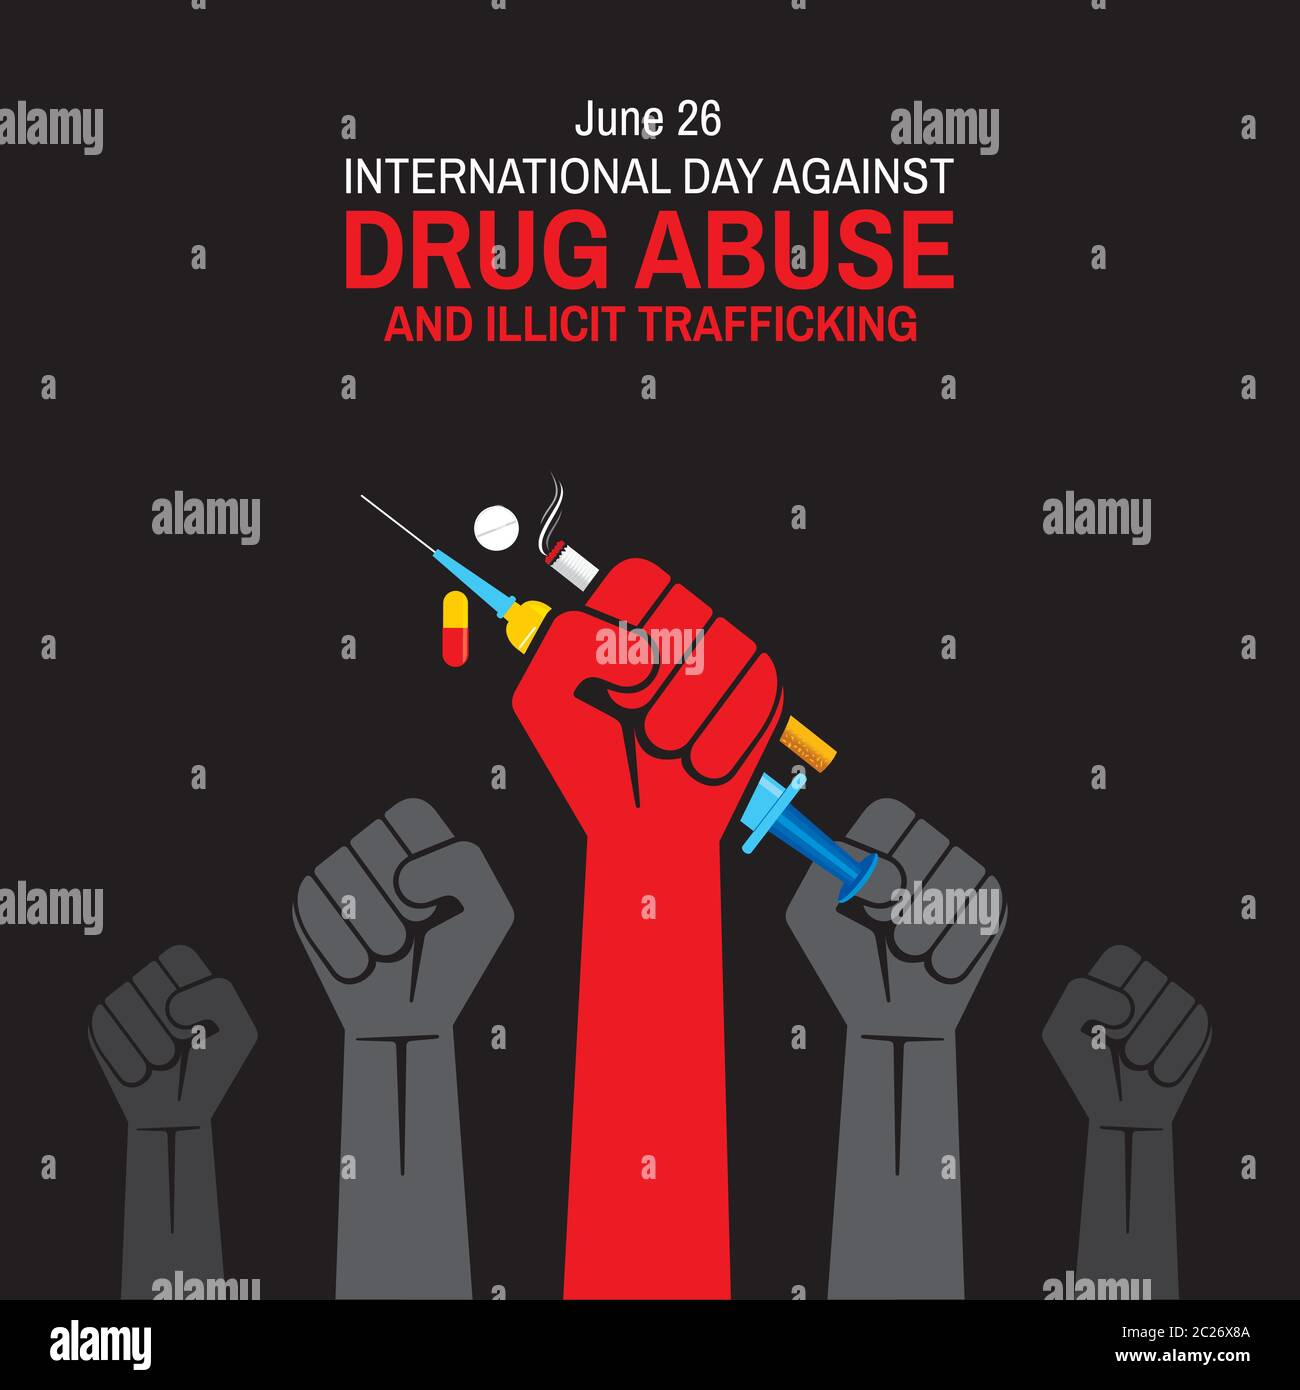 https www alamy com vector illustration of international day against drug abuse and illicit trafficking poster and banner design image362799370 html